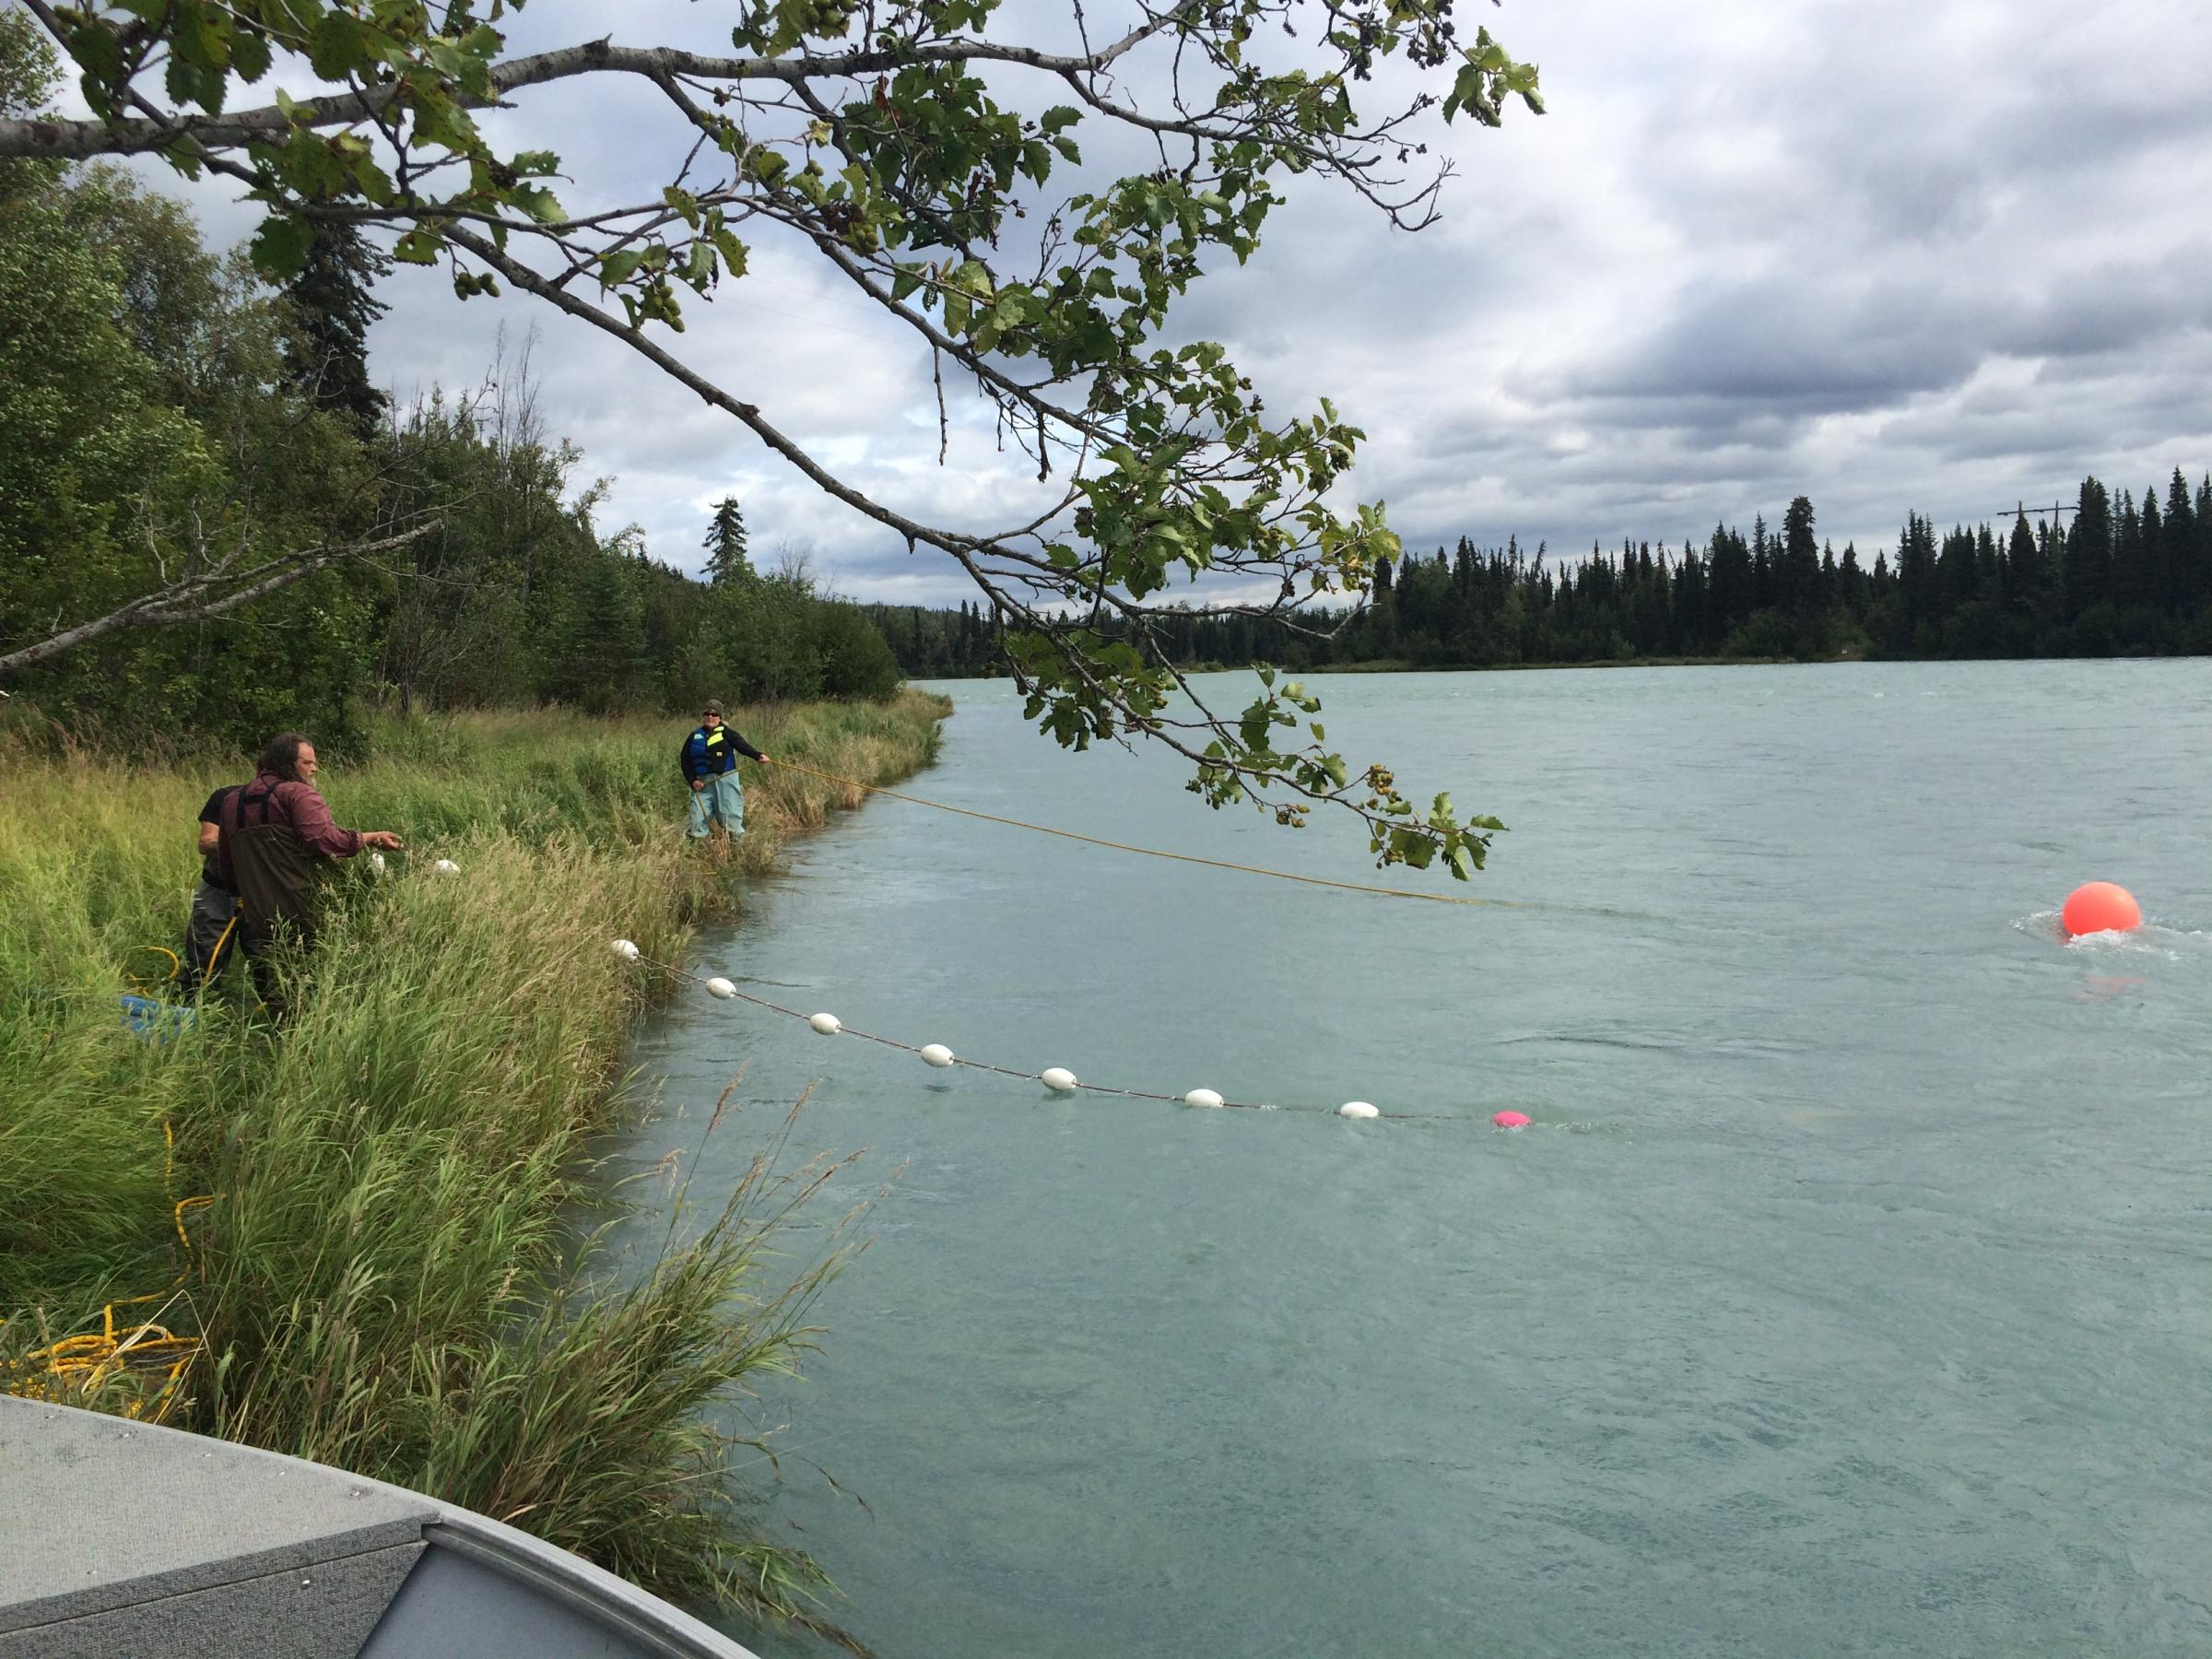 The NTC crew sets the tribe's gill net on the Kenai River in the Moose Meadows Range area on Saturday, July 30. (Photo by Daysha Eaton, KBBI - Homer)